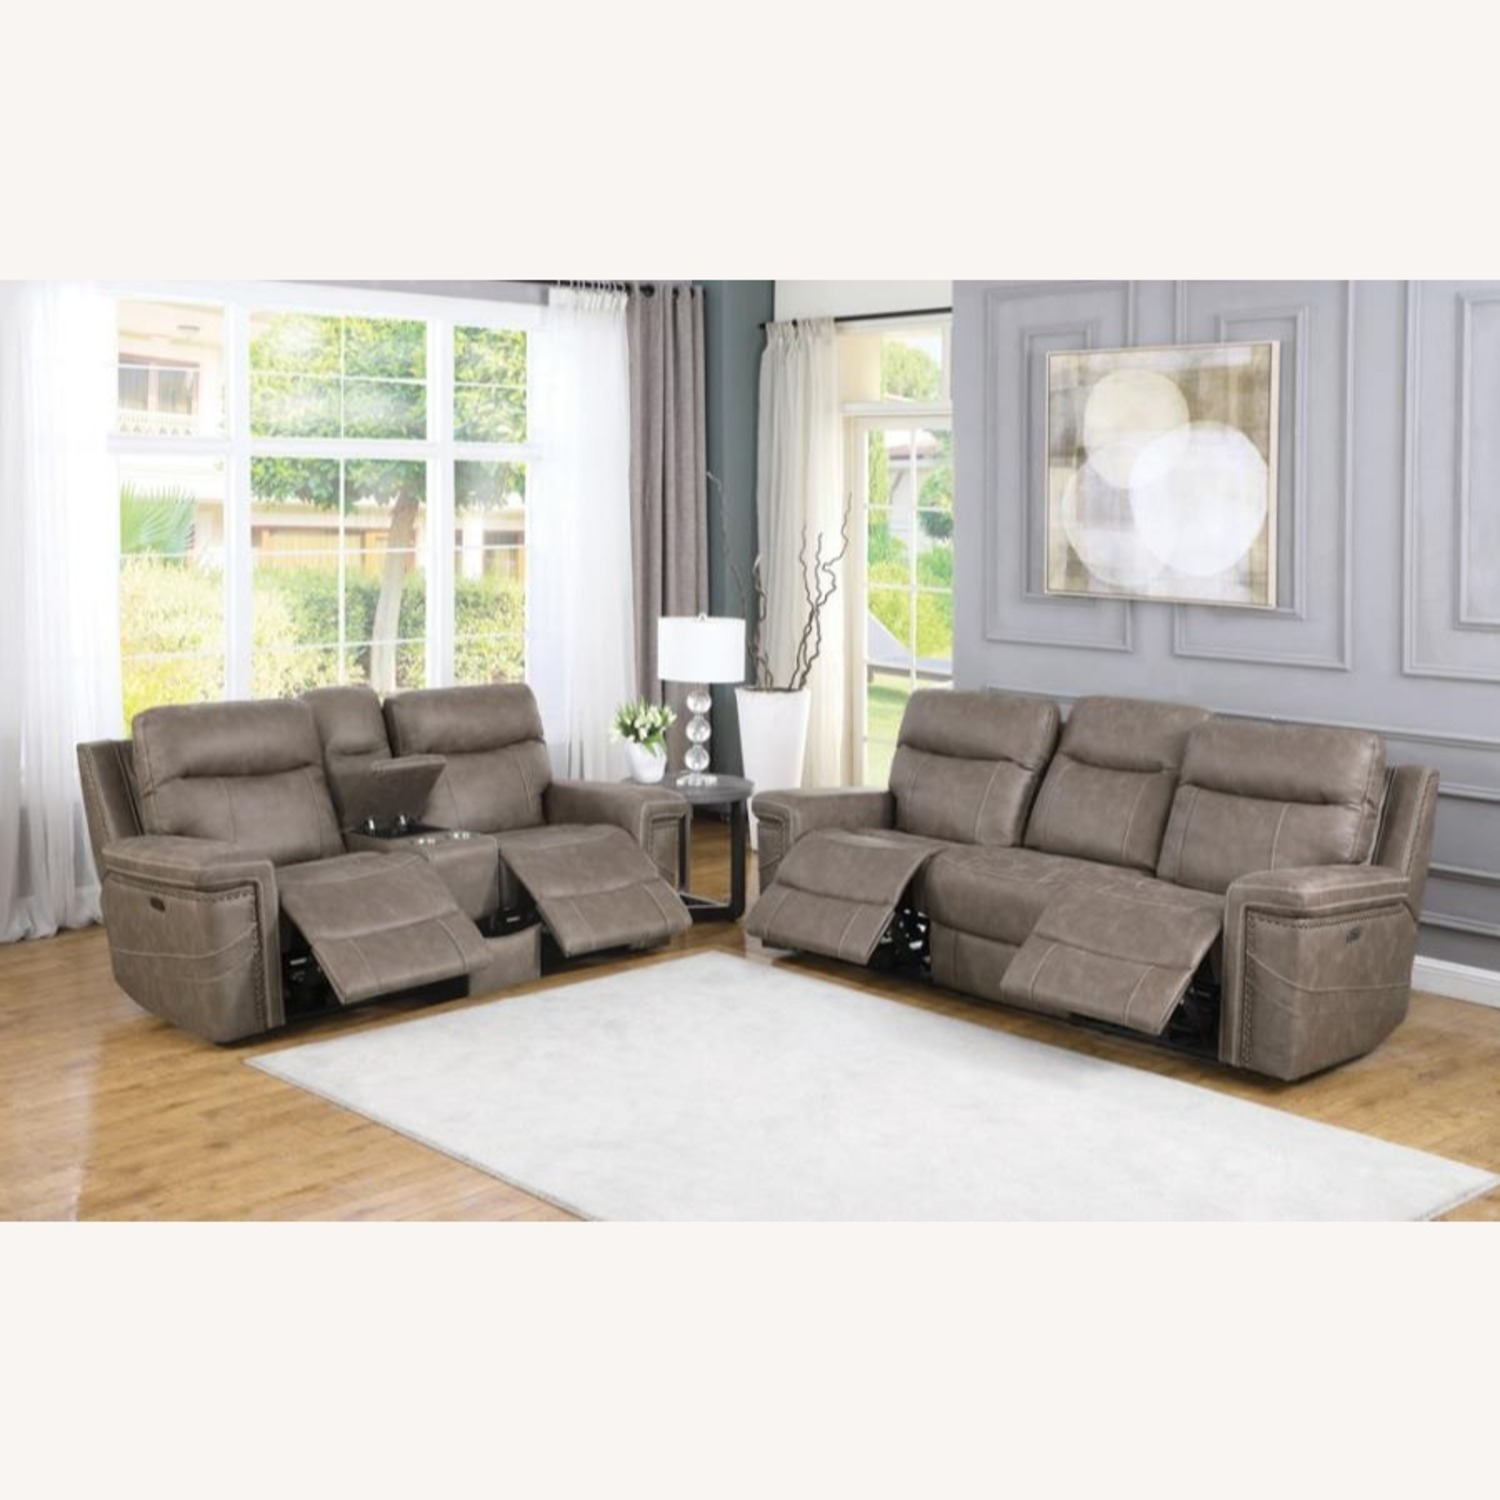 Power Sofa Recliner In Taupe Upholstery - image-7